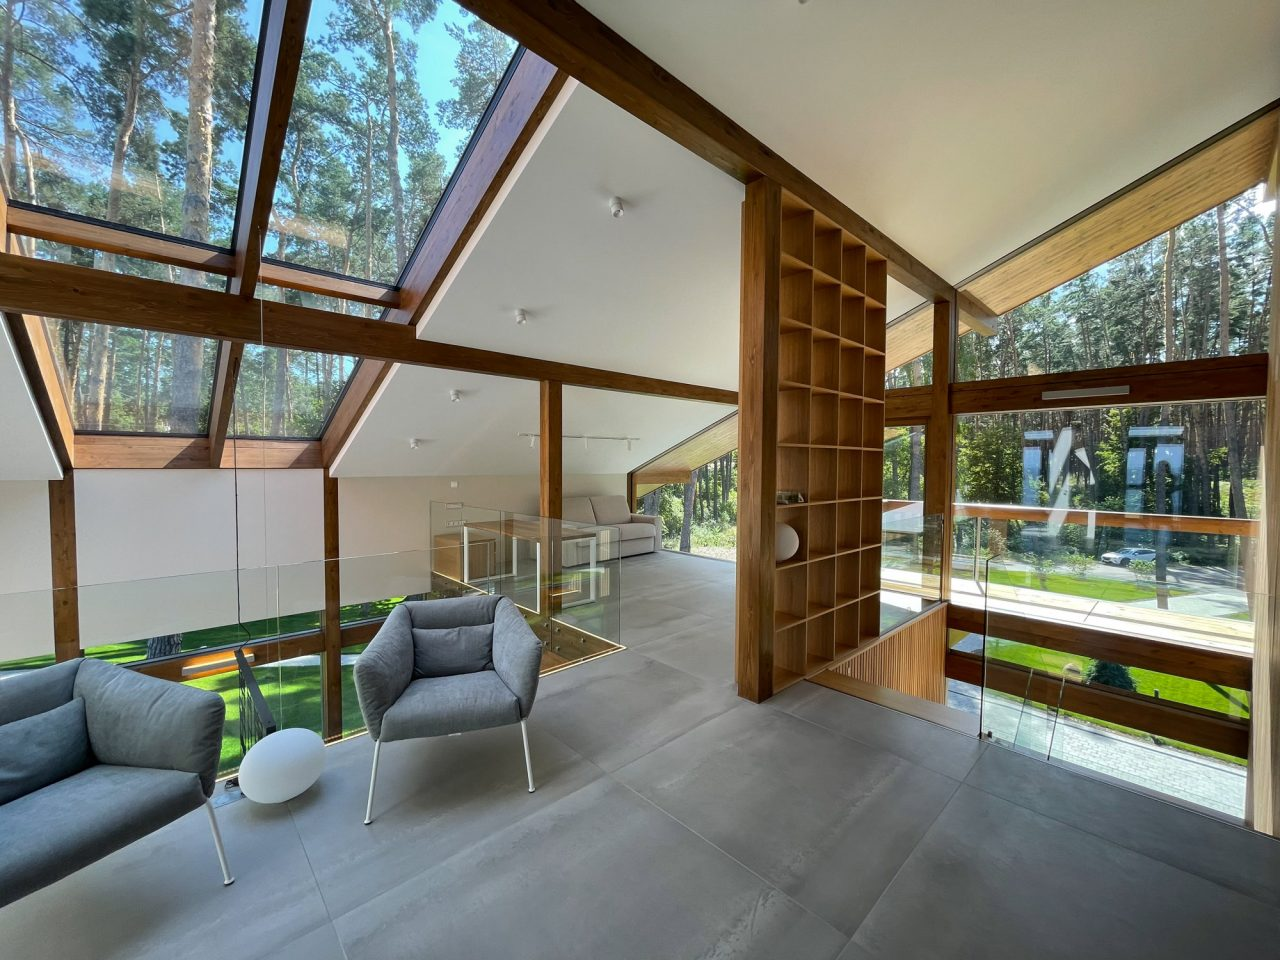 Hlass_house_KAGER - Hurii_15